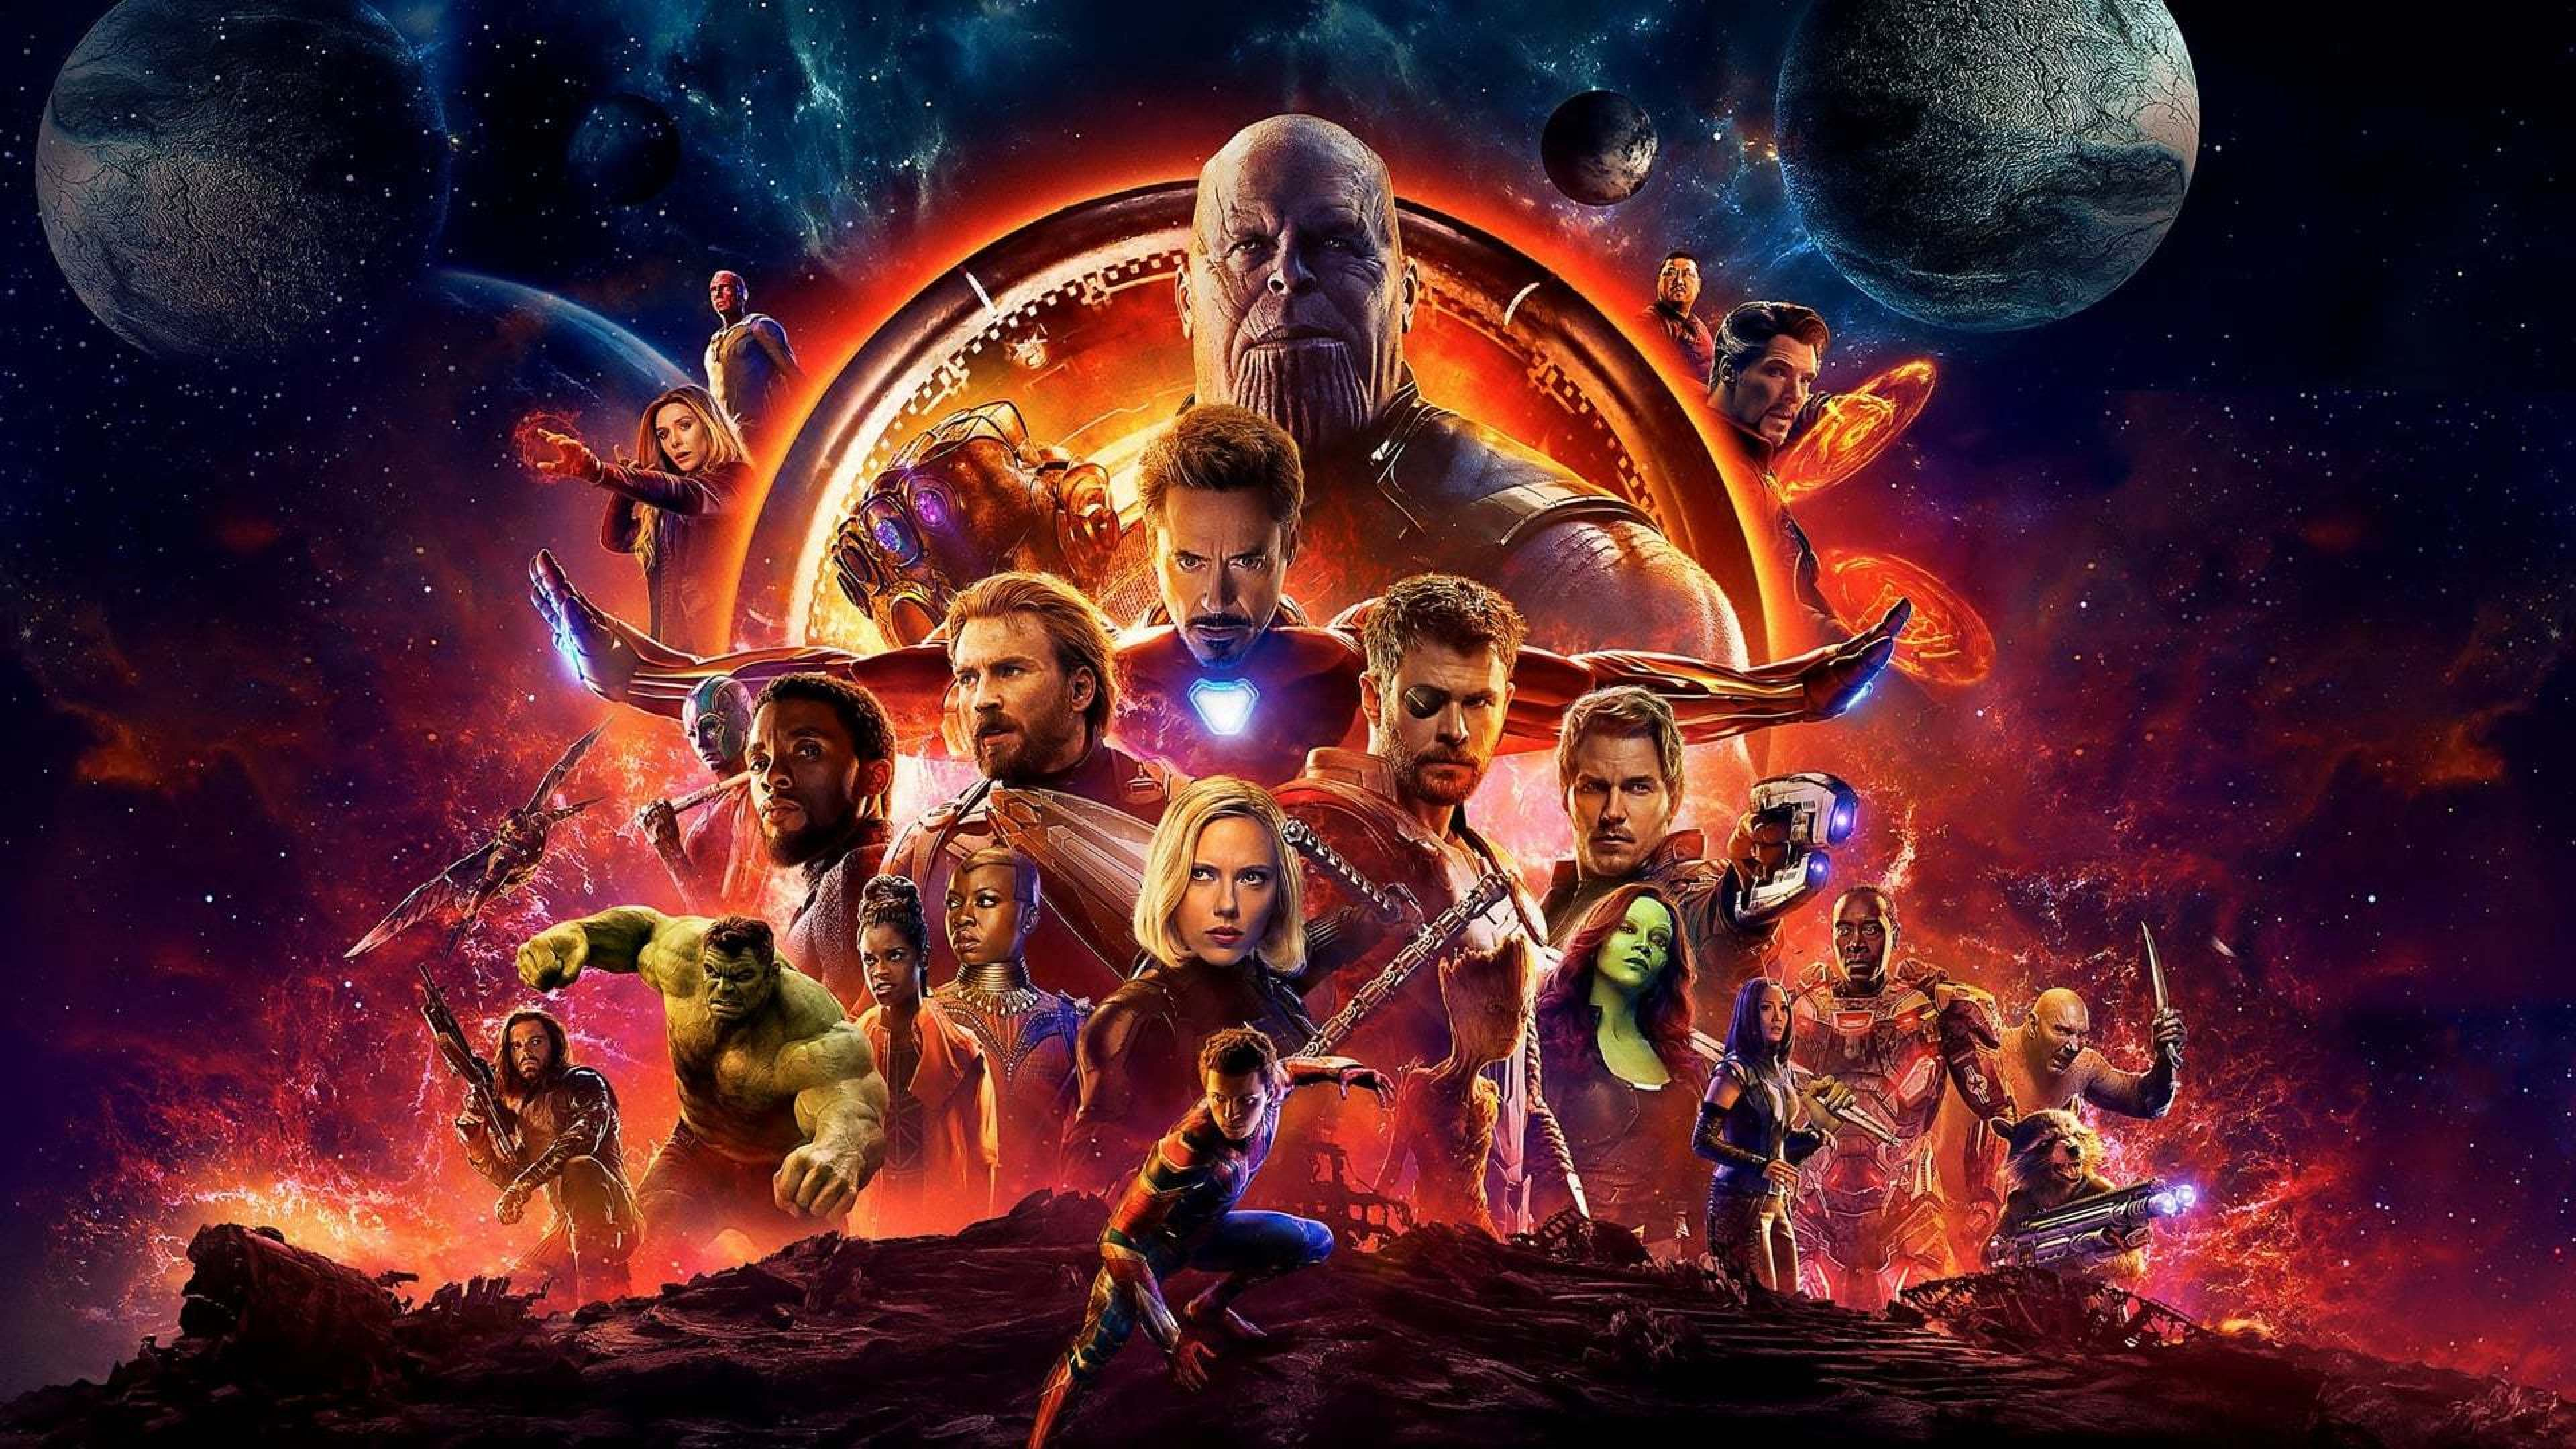 Download Avengers Infinity War Official Poster 3840x2160